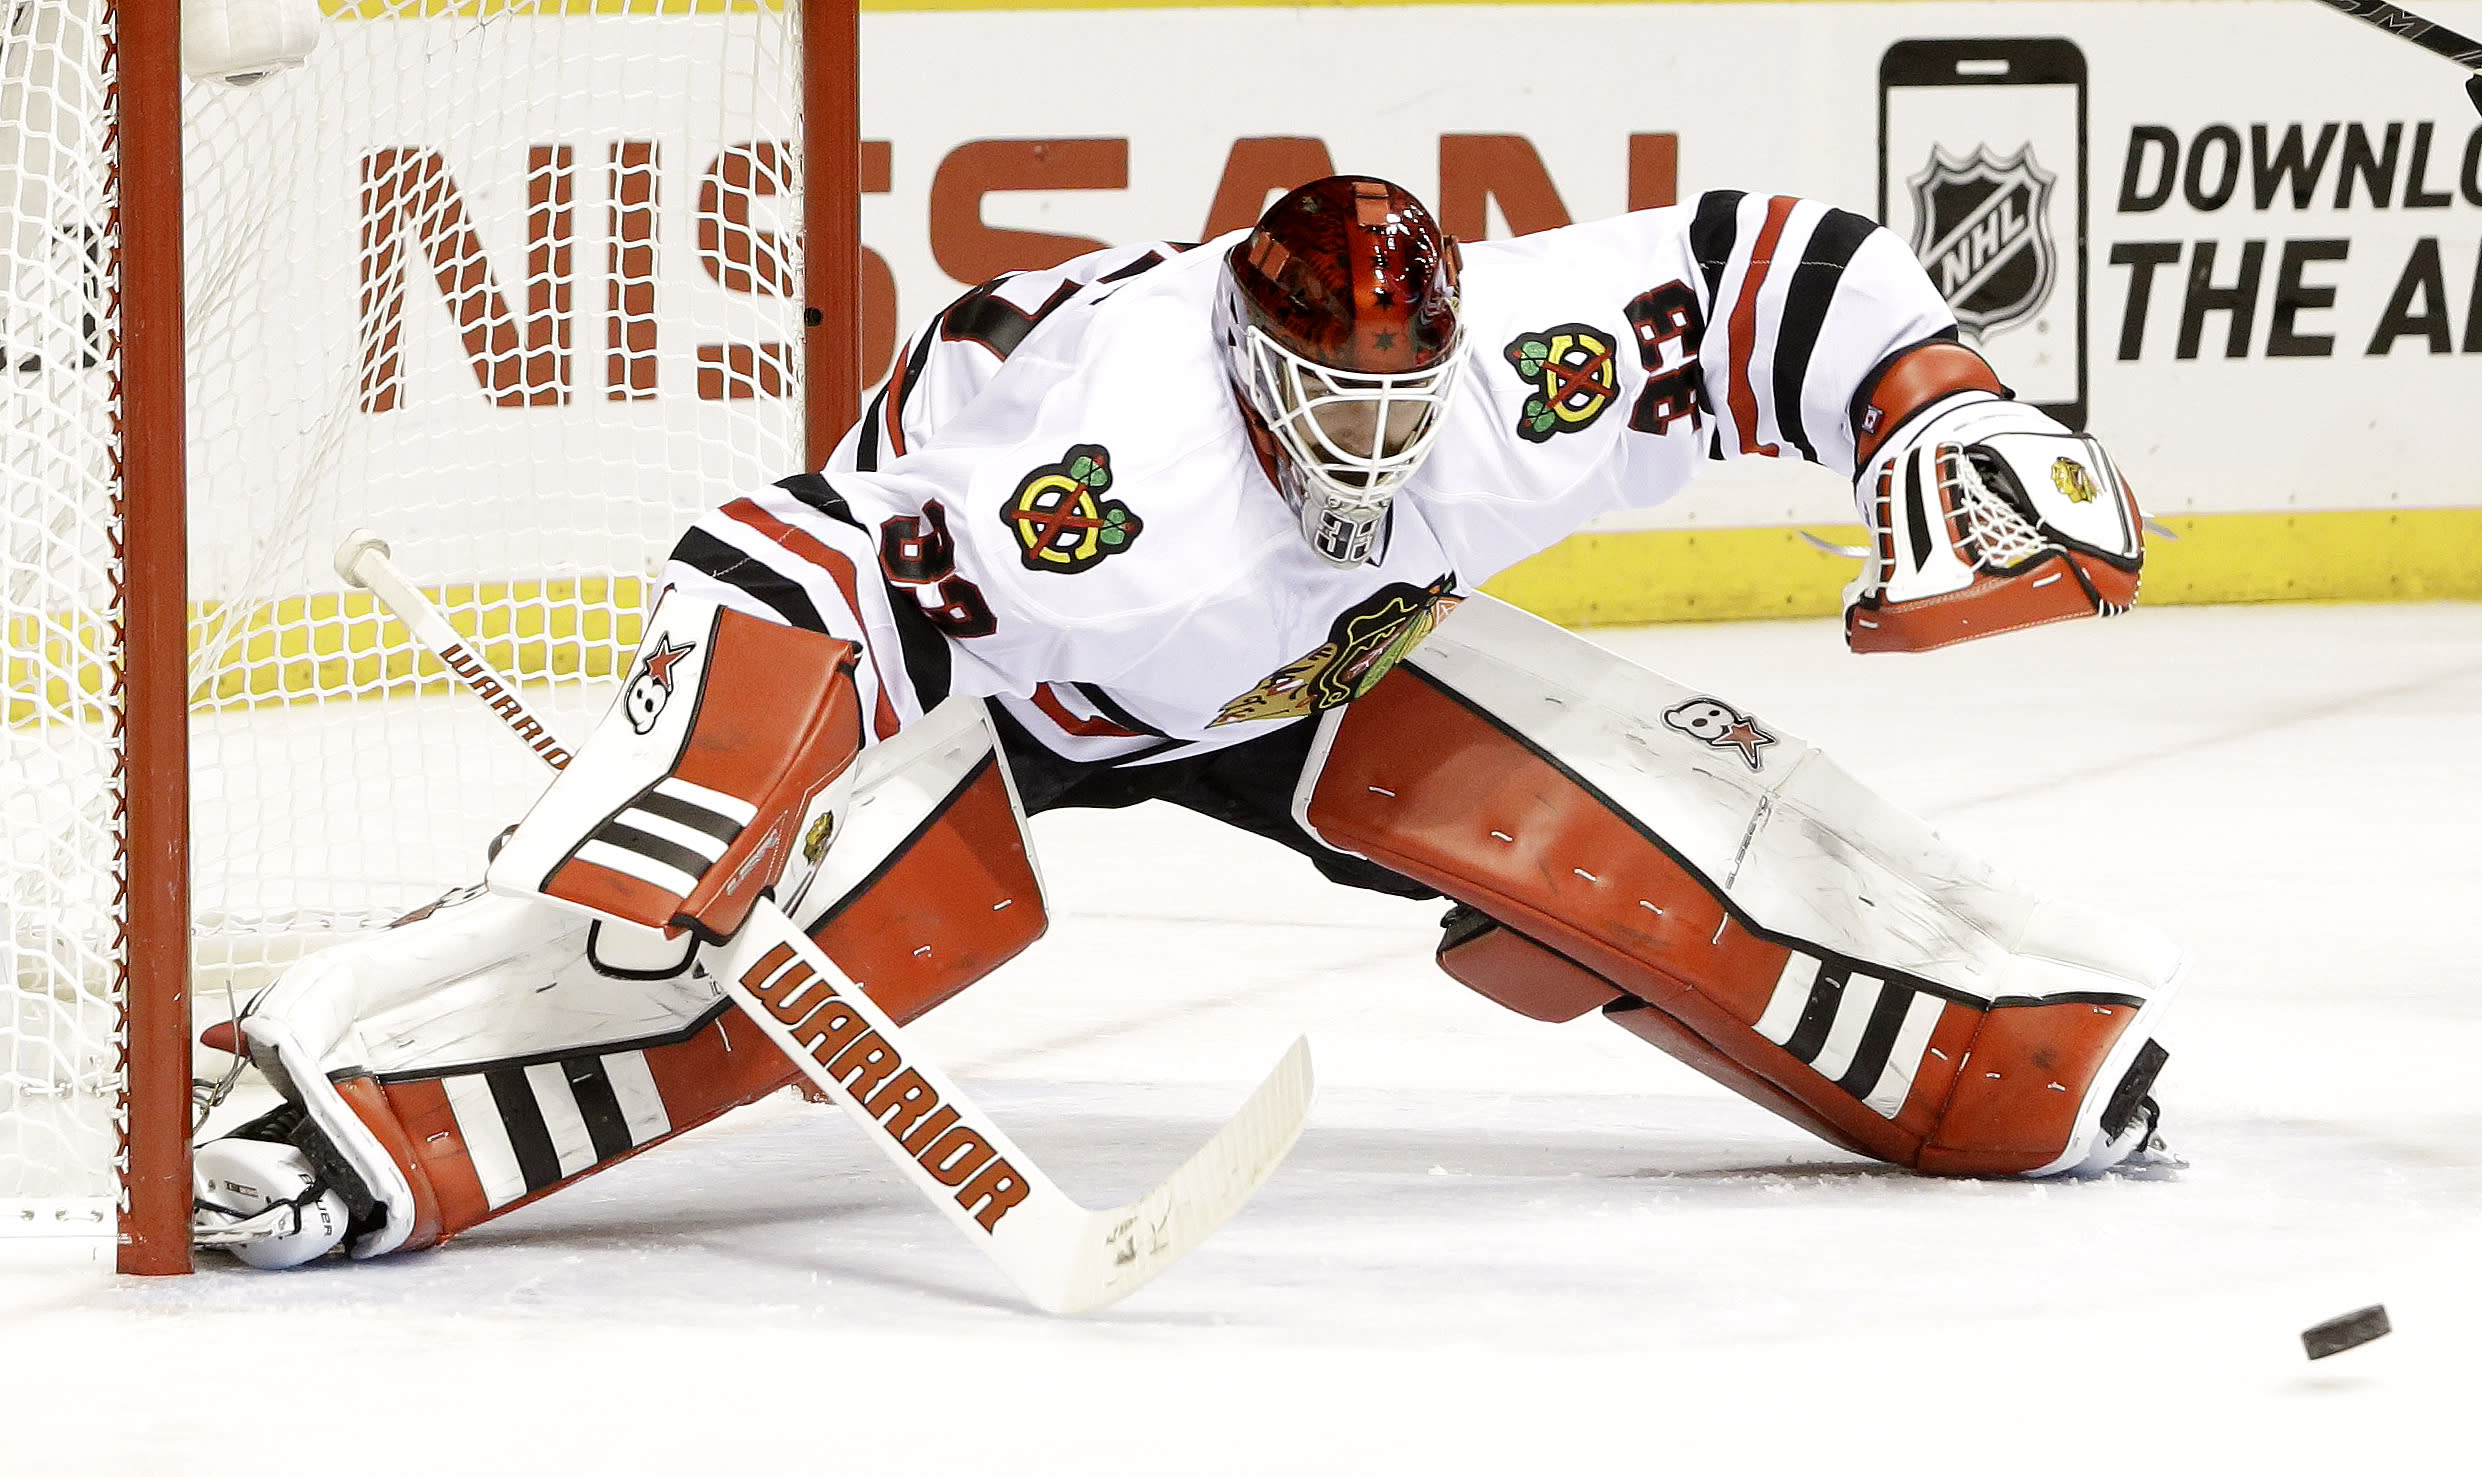 Rookie G Darling to start for Blackhawks in Game 3 vs Preds